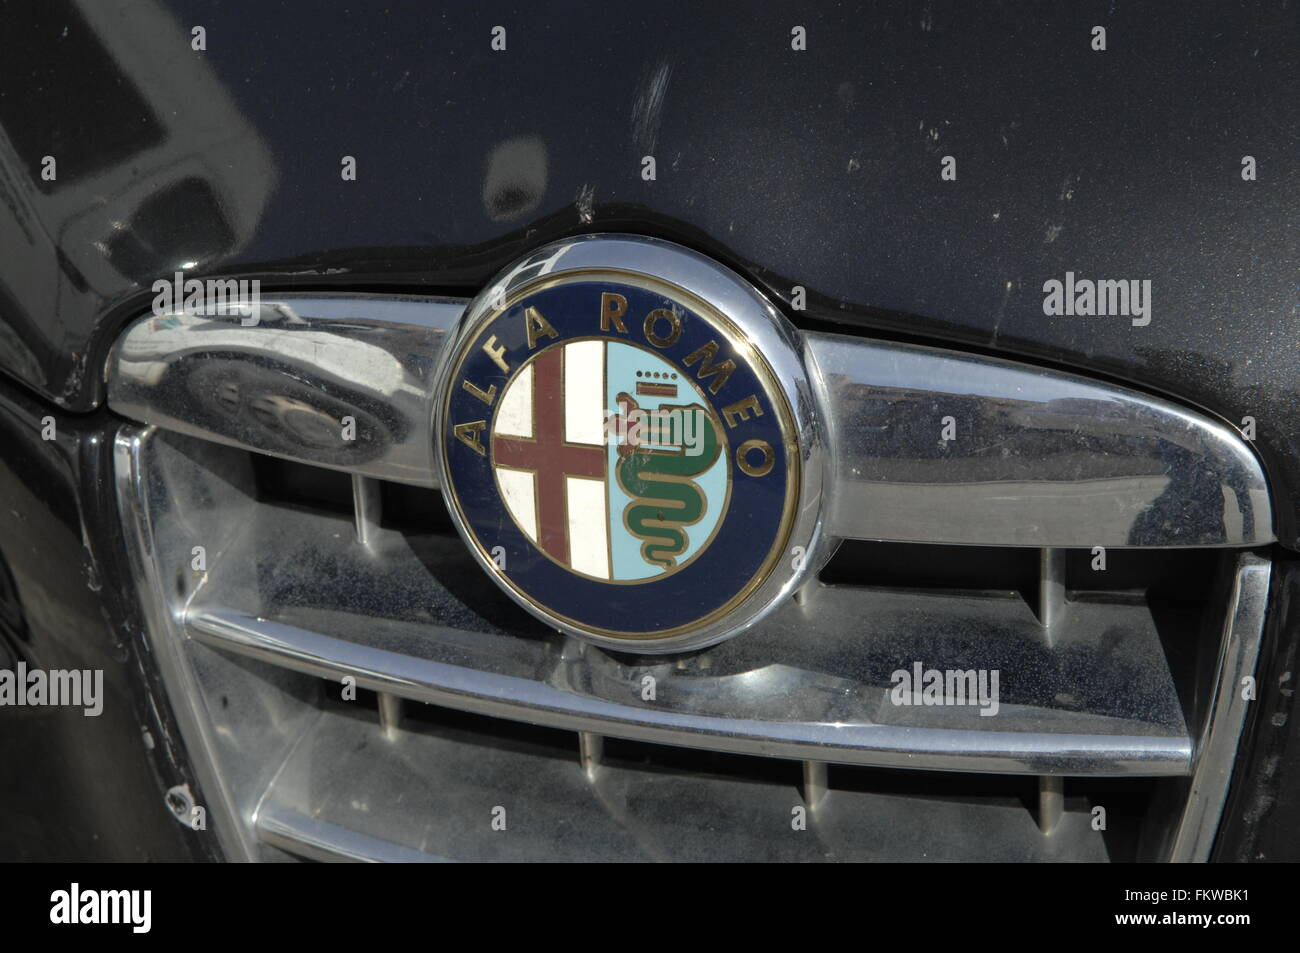 Alfa Romeo Automobiles S.p.A. is an Italian car manufacturer. Founded as A.L.F.A. ('Anonima Lombarda Fabbrica - Stock Image